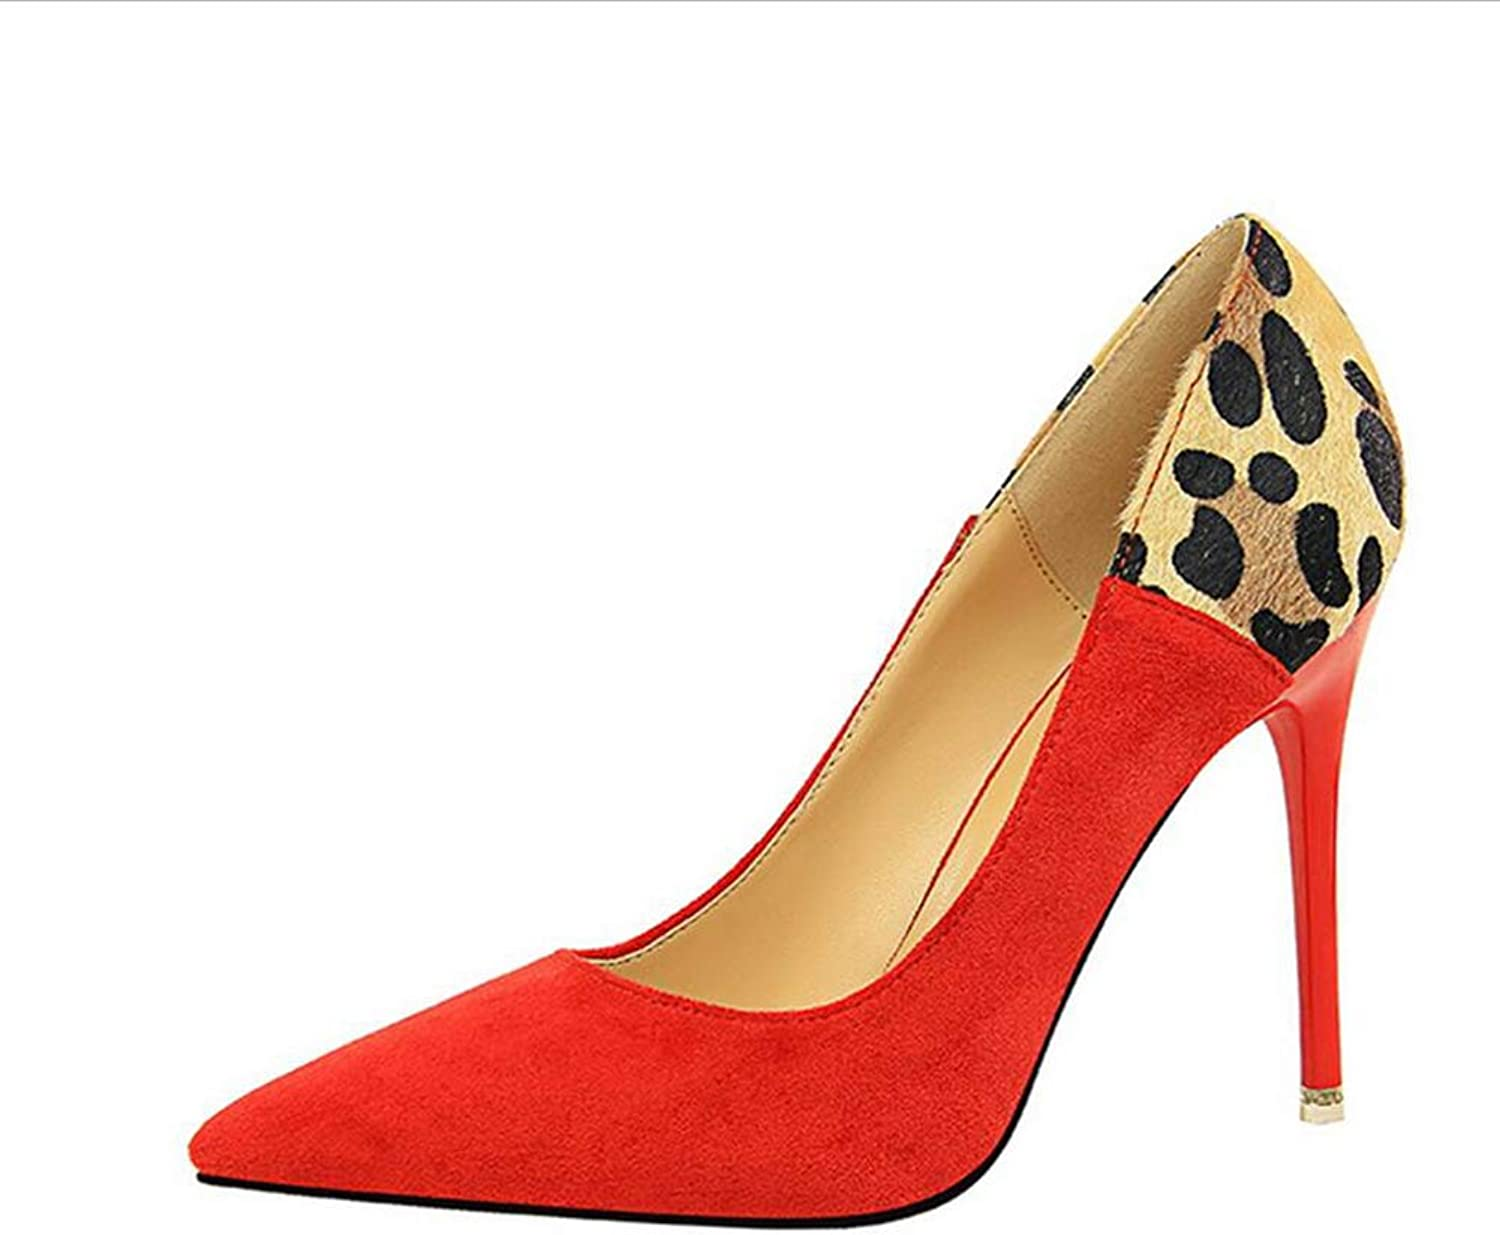 shoes Court shoes Women's shoes High Heel Shallow Mouth European and American Style Fine Heel Pointed Sexy Nightclubs Suede Mixed Haiming (color   Red, Size   6 US)